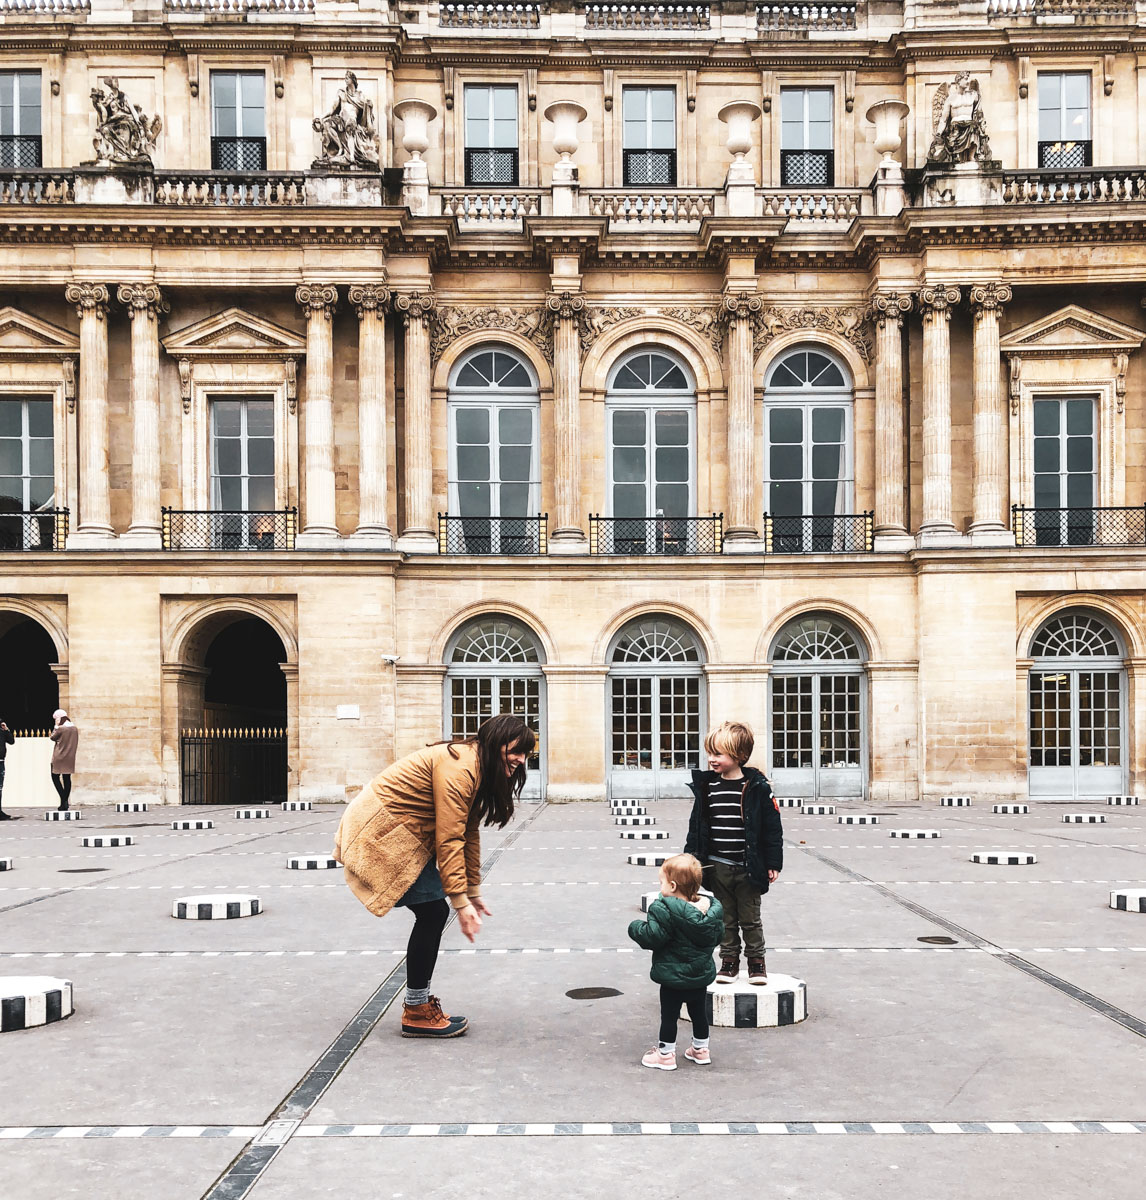 here are places to visit and activities not to miss while traveling to Paris with kids.